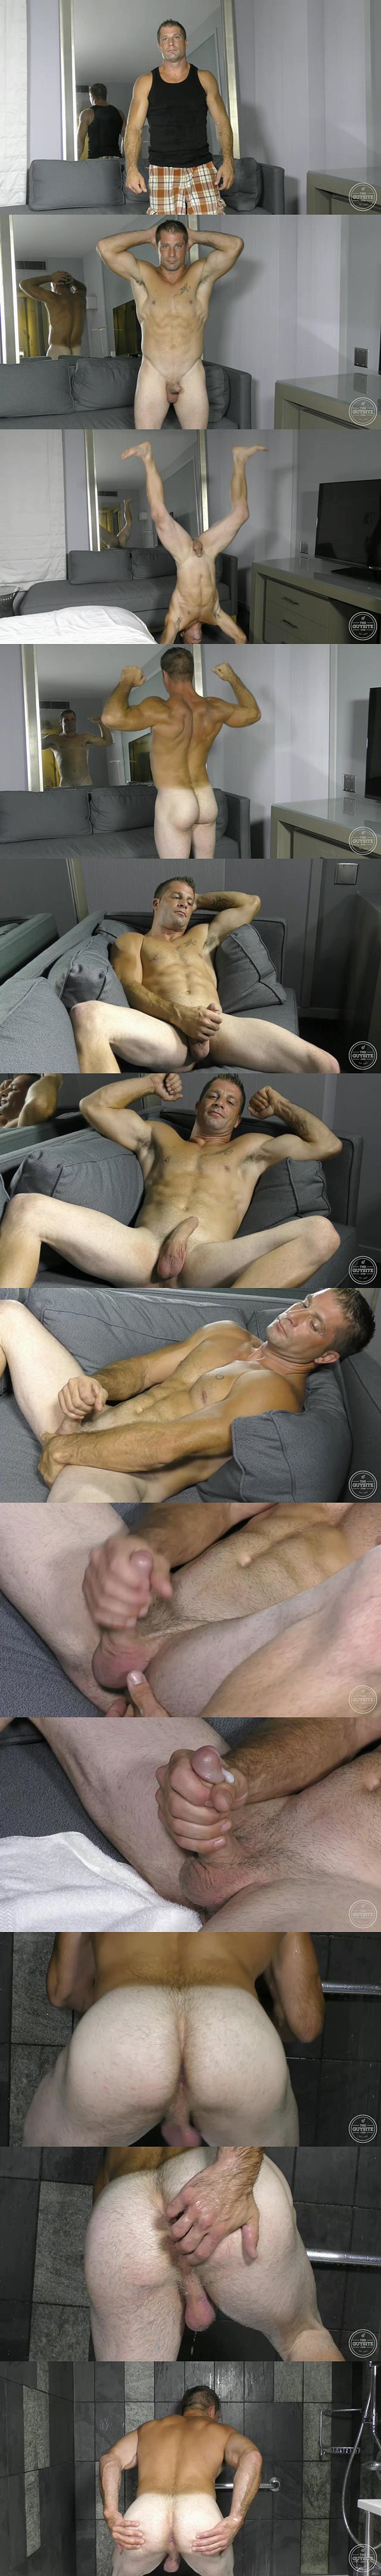 Masculine beefy stud Zane finger fucks himself and wanks off at Theguysite